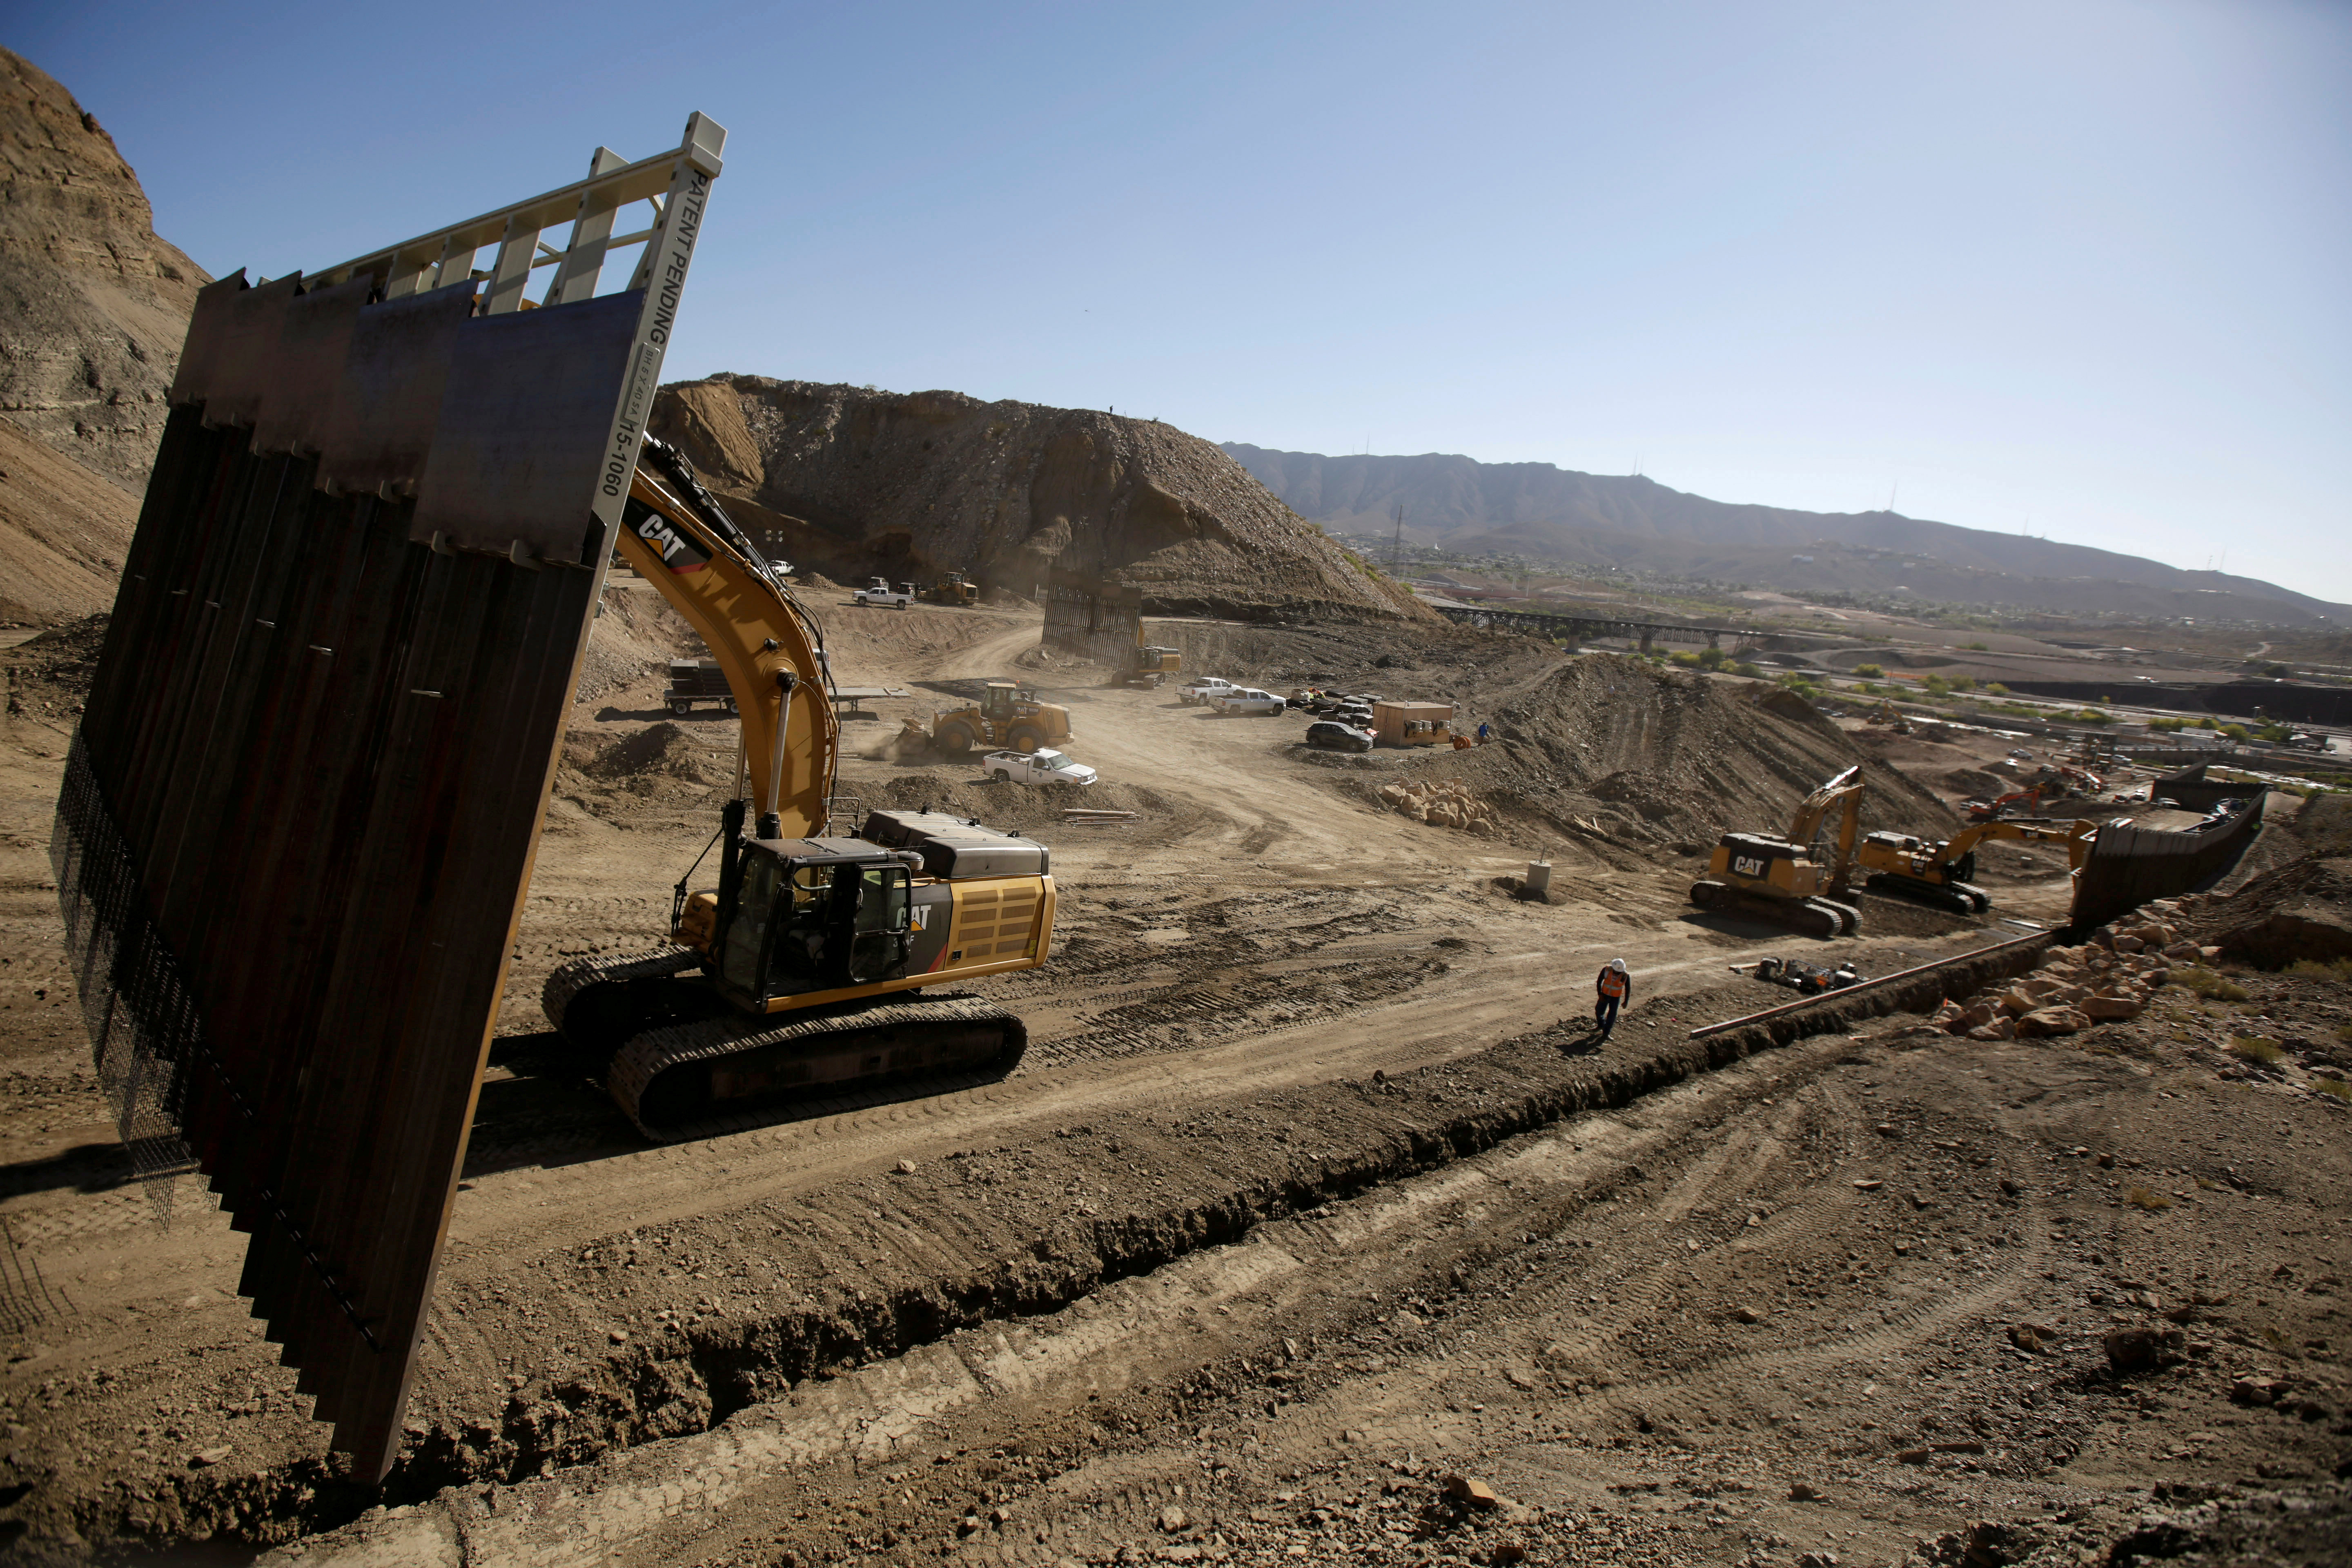 FILE PHOTO: Heavy machinery moves a bollard-type wall, to be placed along the border of private property using funds raised from a GoFundMe account, at Sunland Park, N.M., as seen from Ciudad Juarez